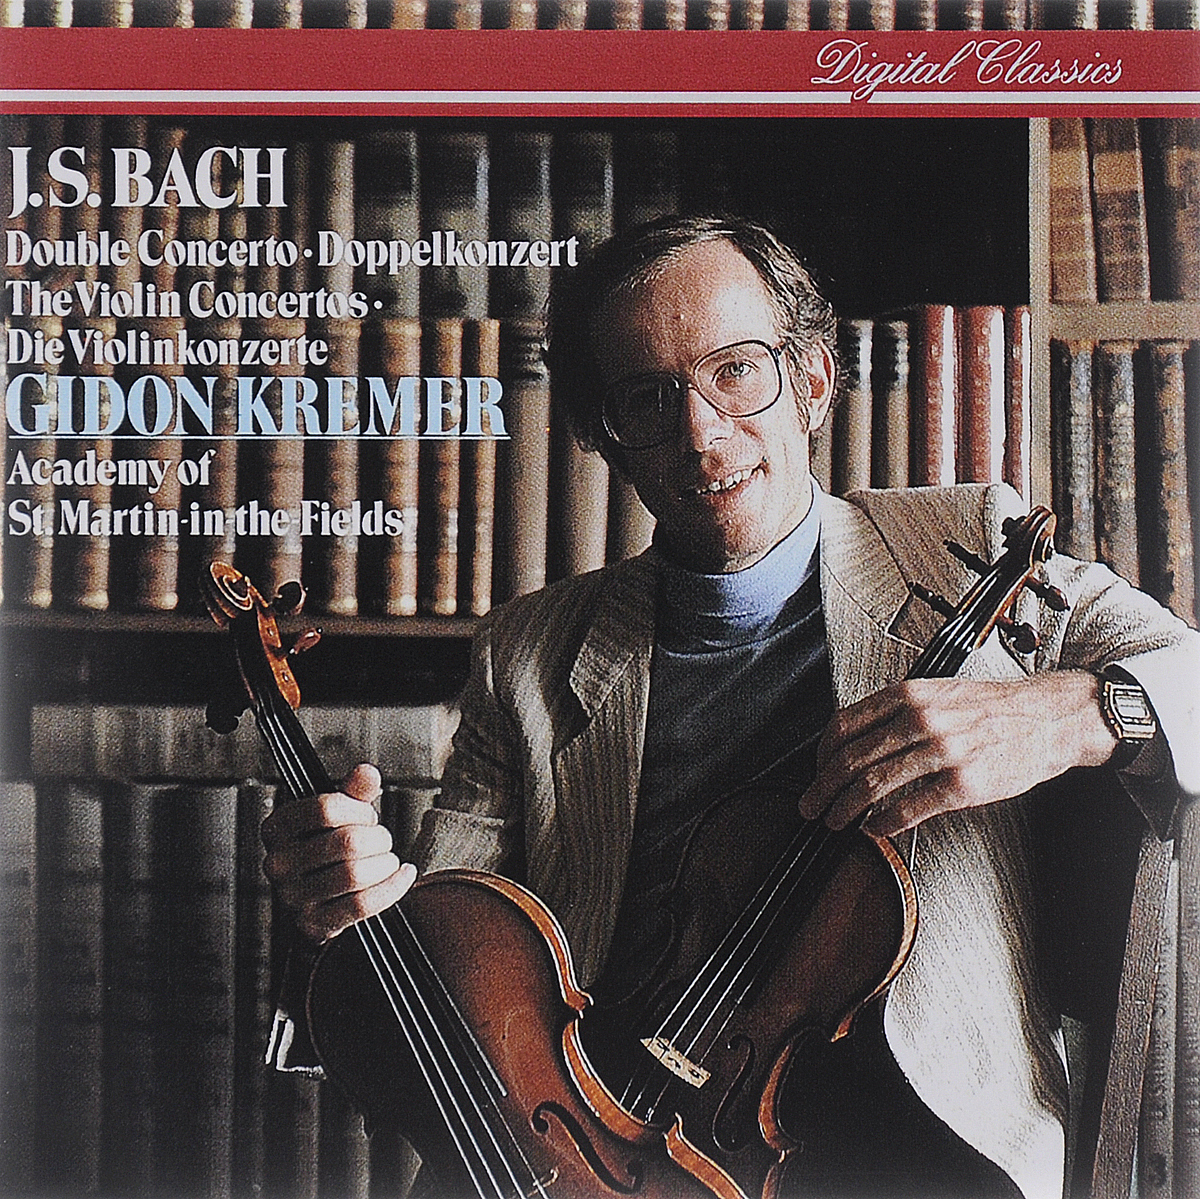 Гидон Кремер,Academy Of St. Martin In The Fields Gidon Kremer. J. S. Bach. The Violin Concertos j c f bach j s bach wachet auf ruft uns die stimme